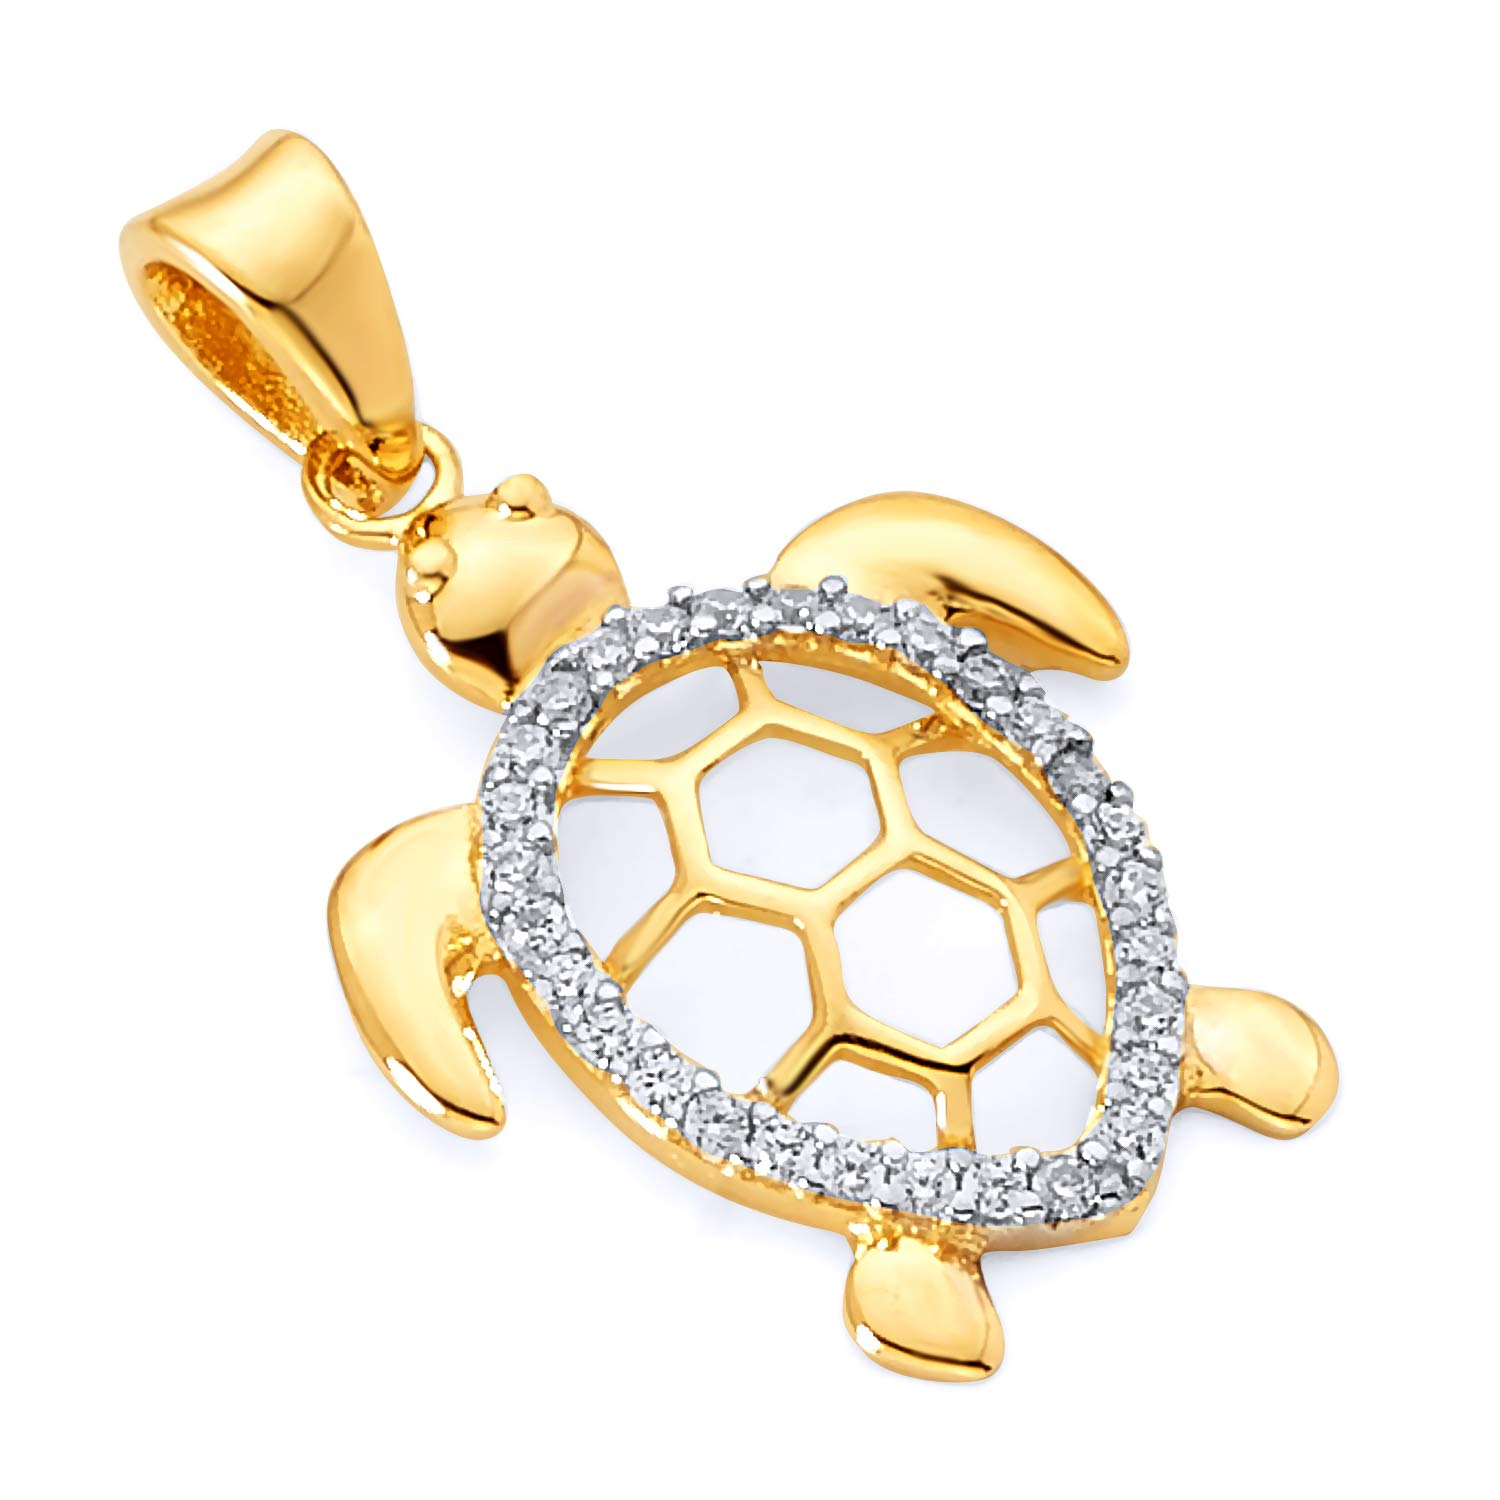 Wellingsale 14k Two 2 Tone White and Yellow Gold Turtle Pendant (Size : 24 x 14 mm)